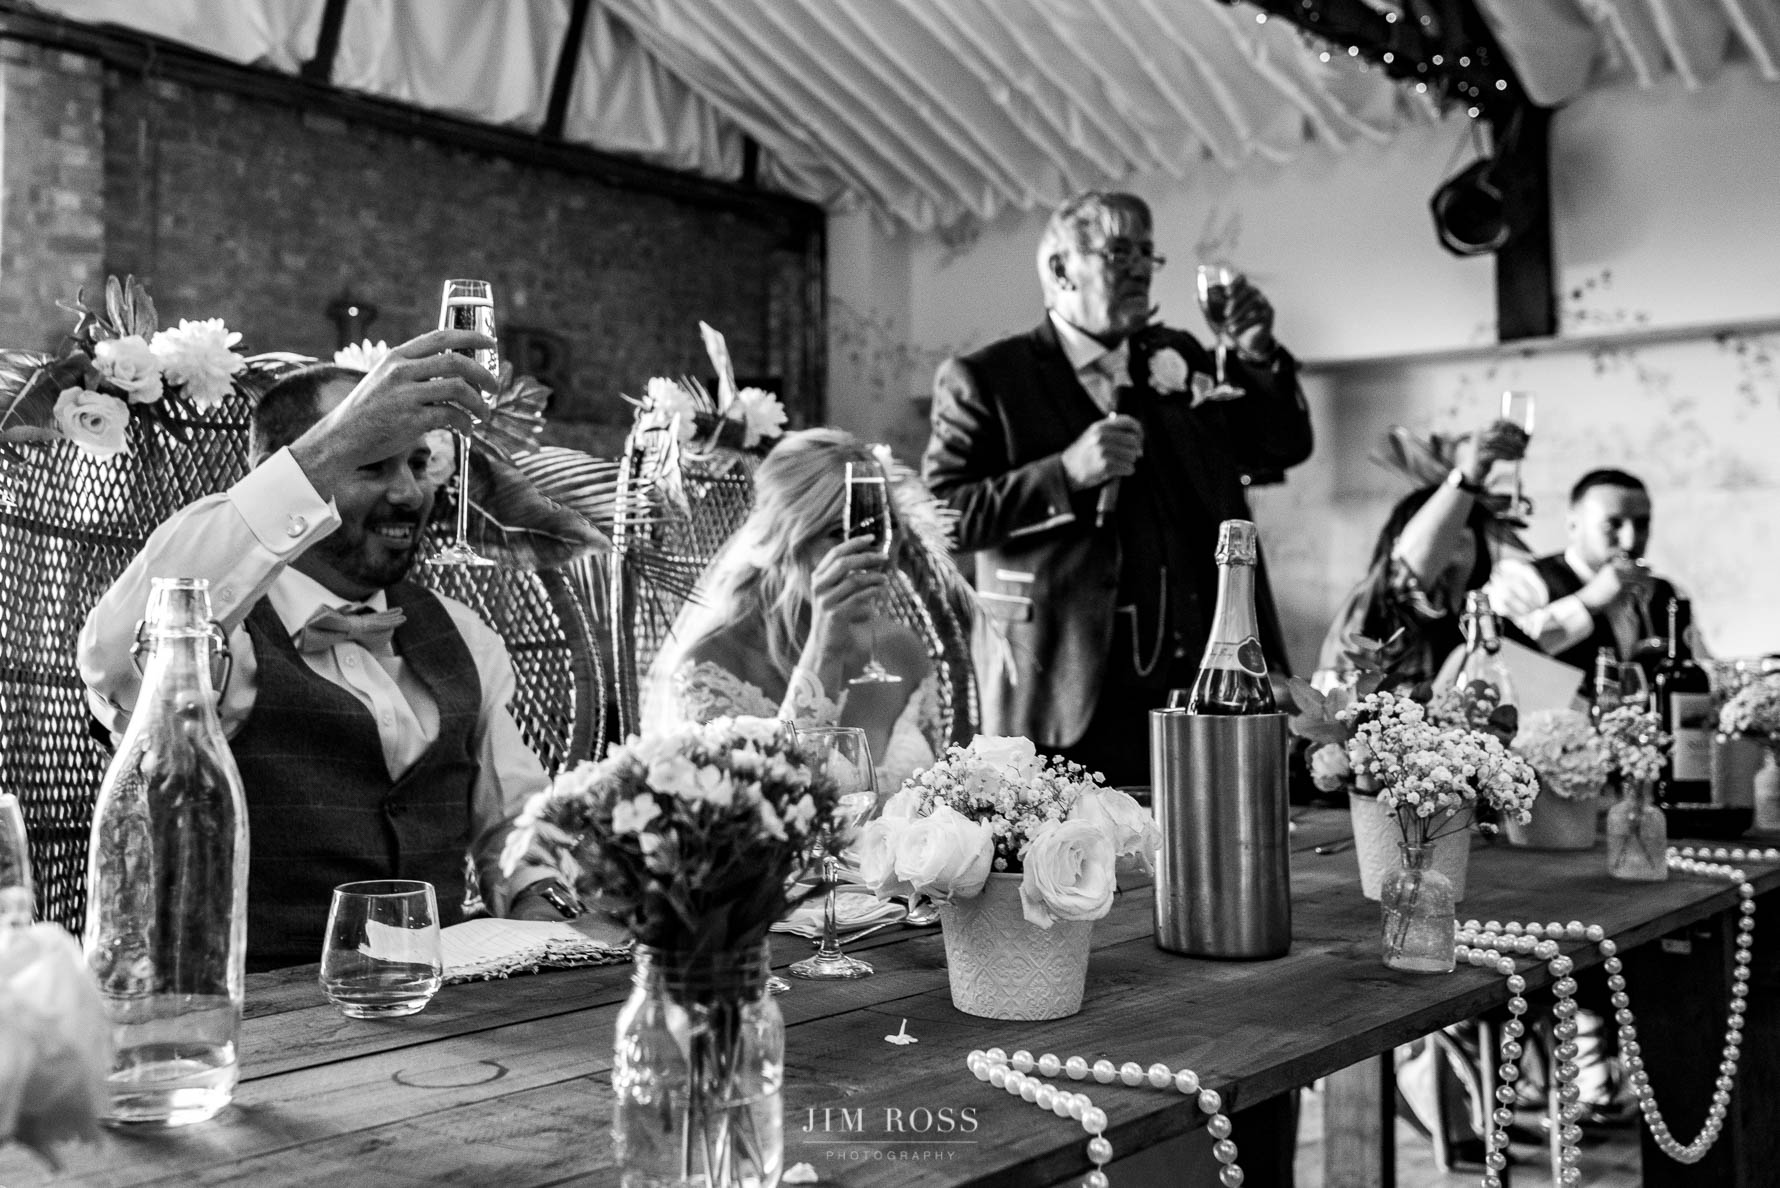 Raising a glass at the Beverley Barn